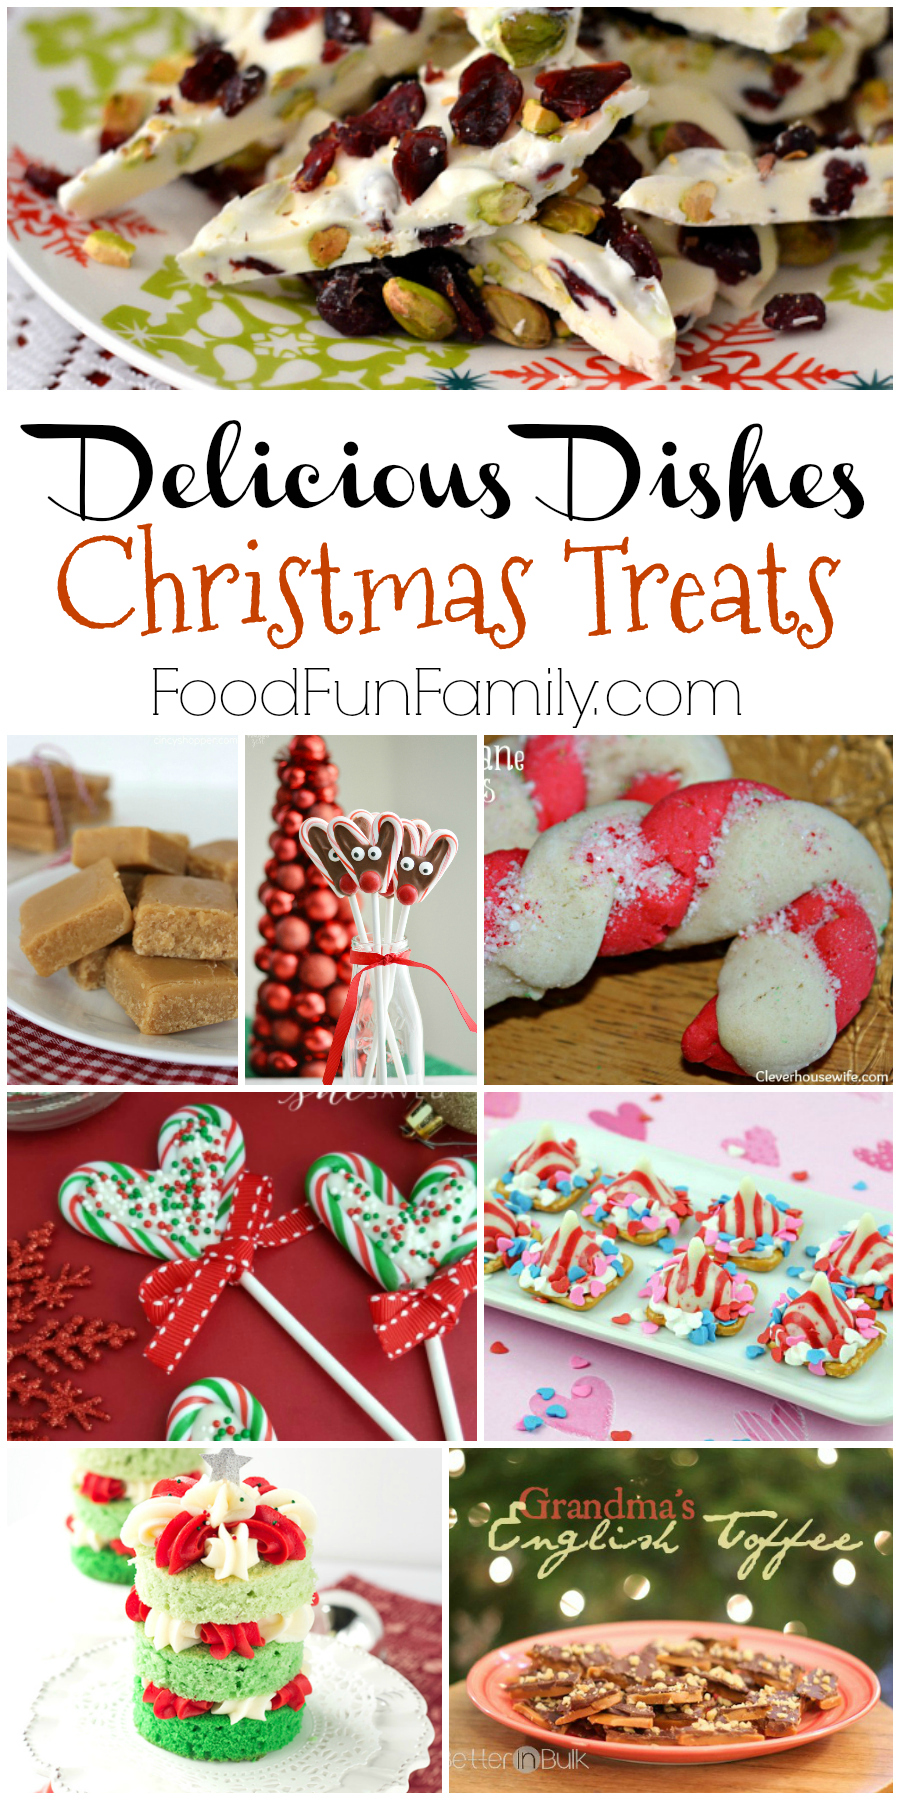 Fun and festive recipes for last-minute Christmas treats from the Delicious Dishes bloggers!